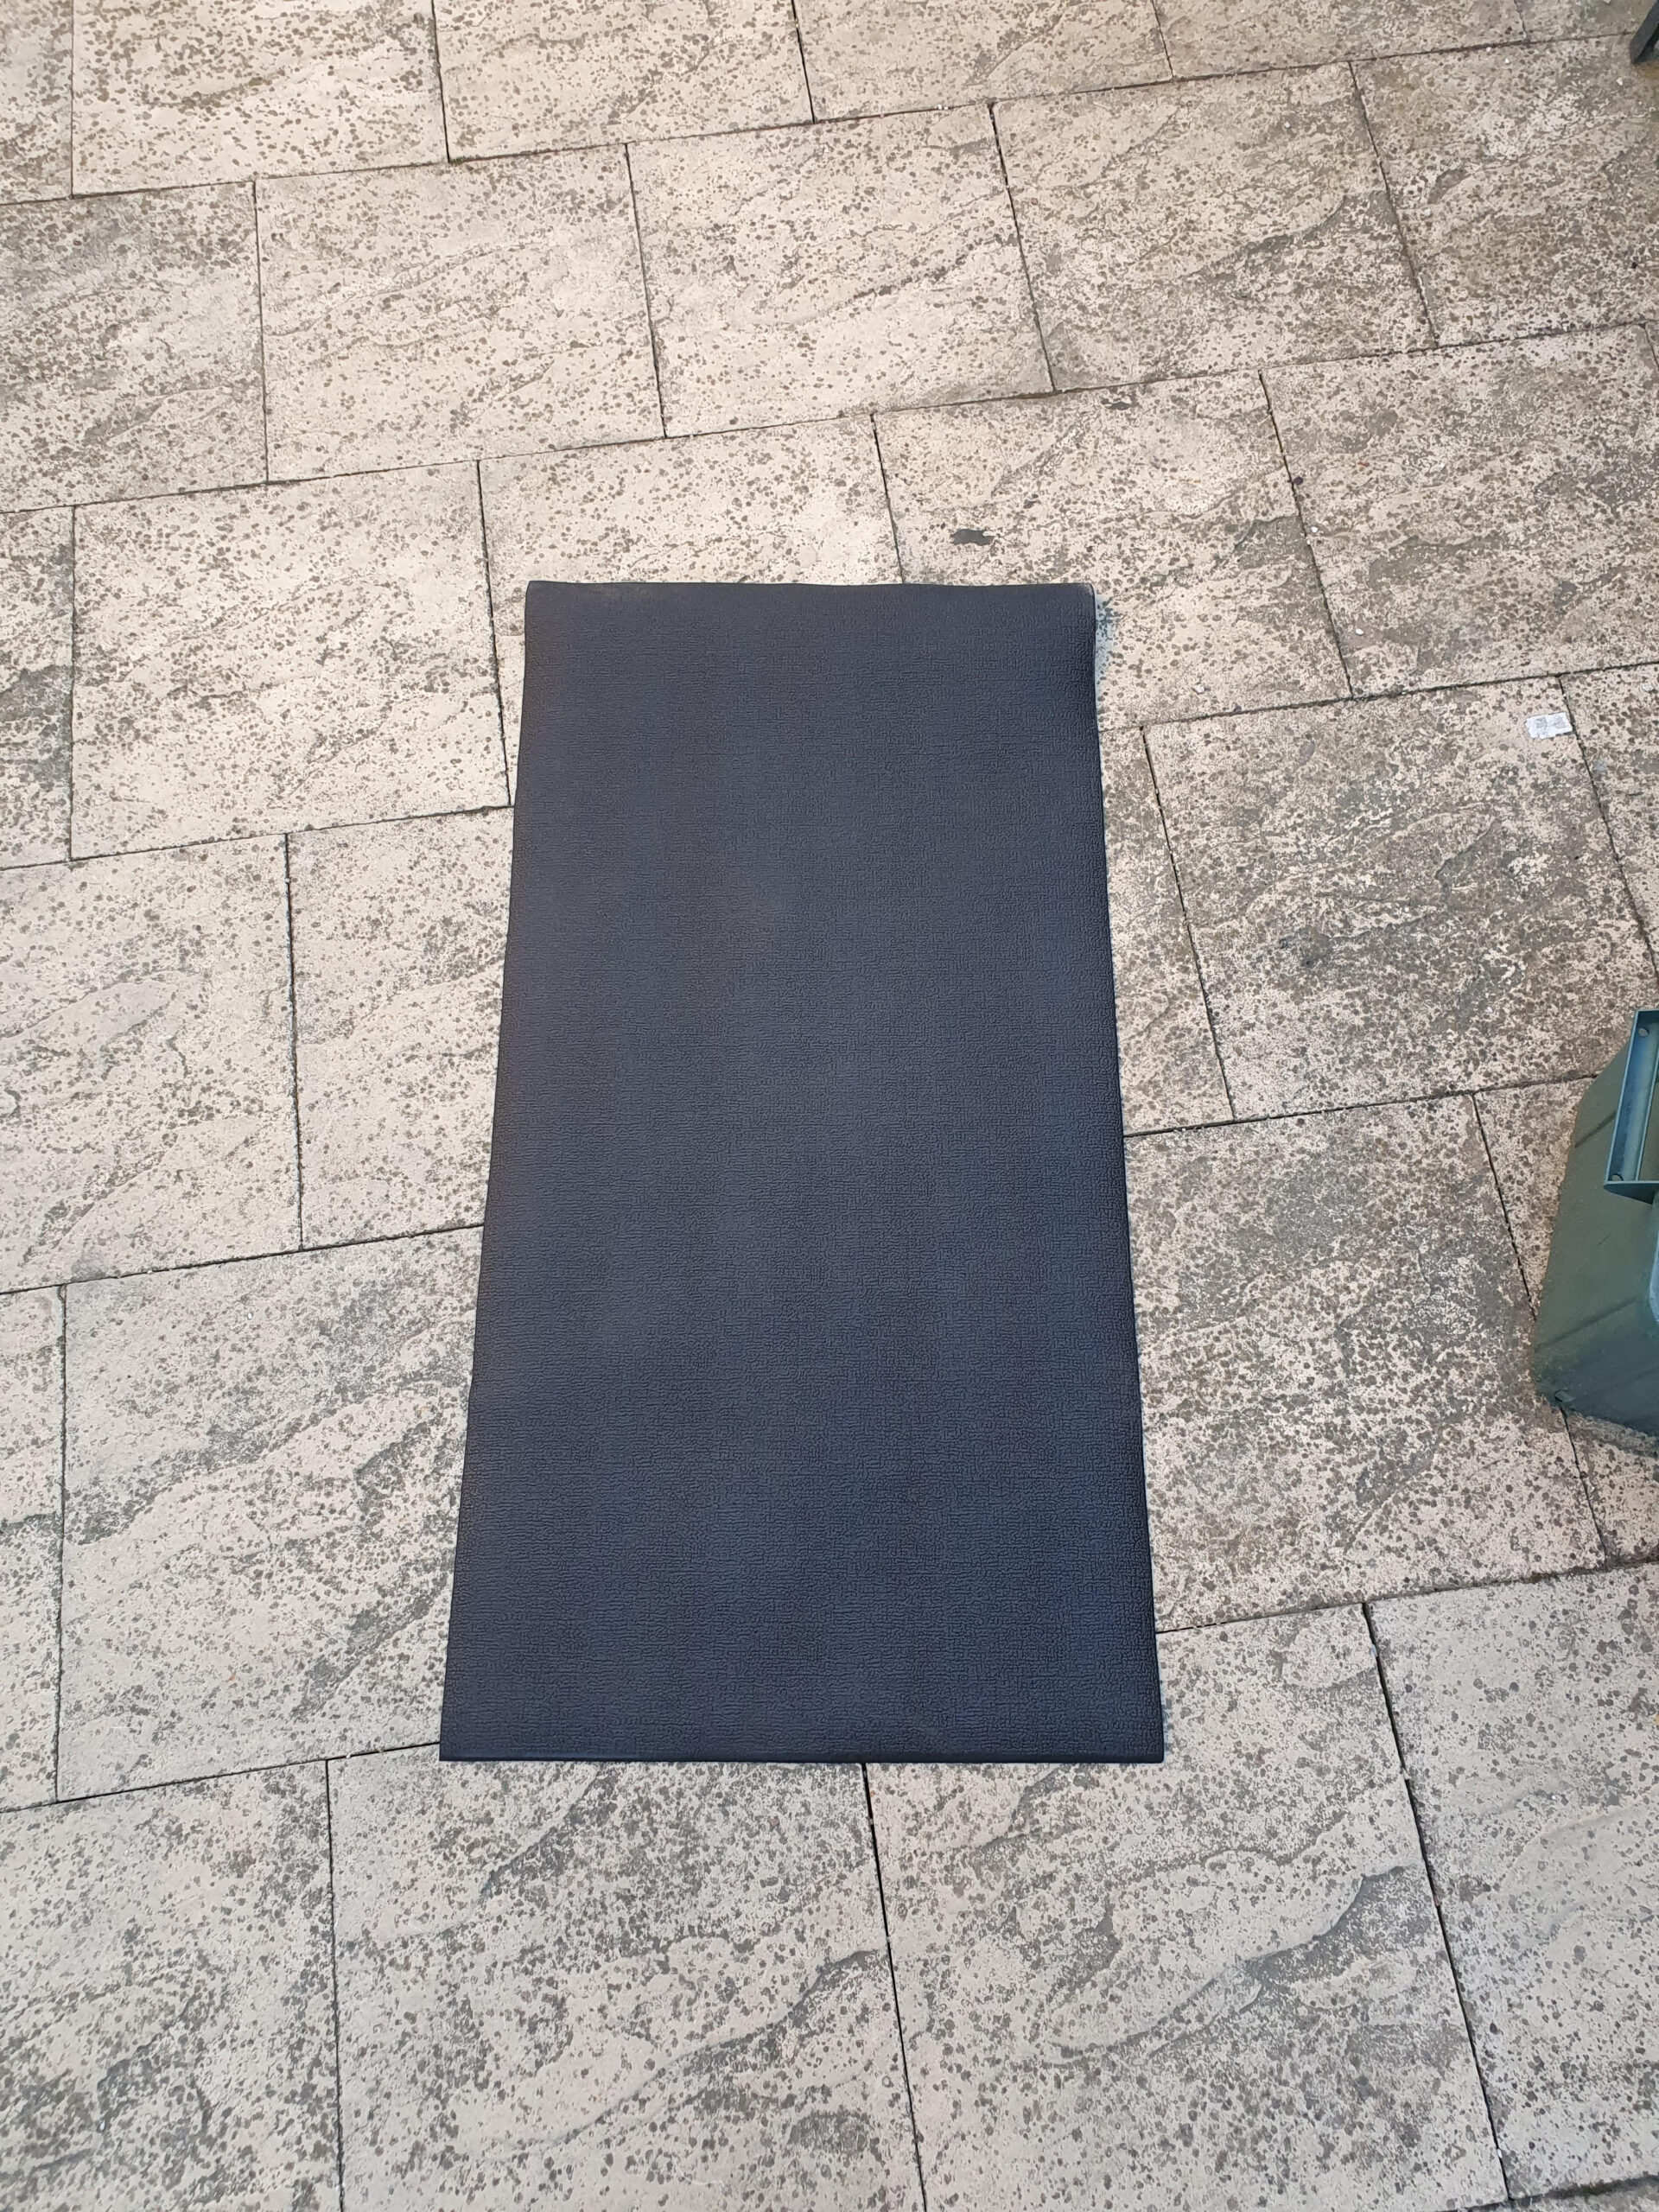 04. Workout Mat